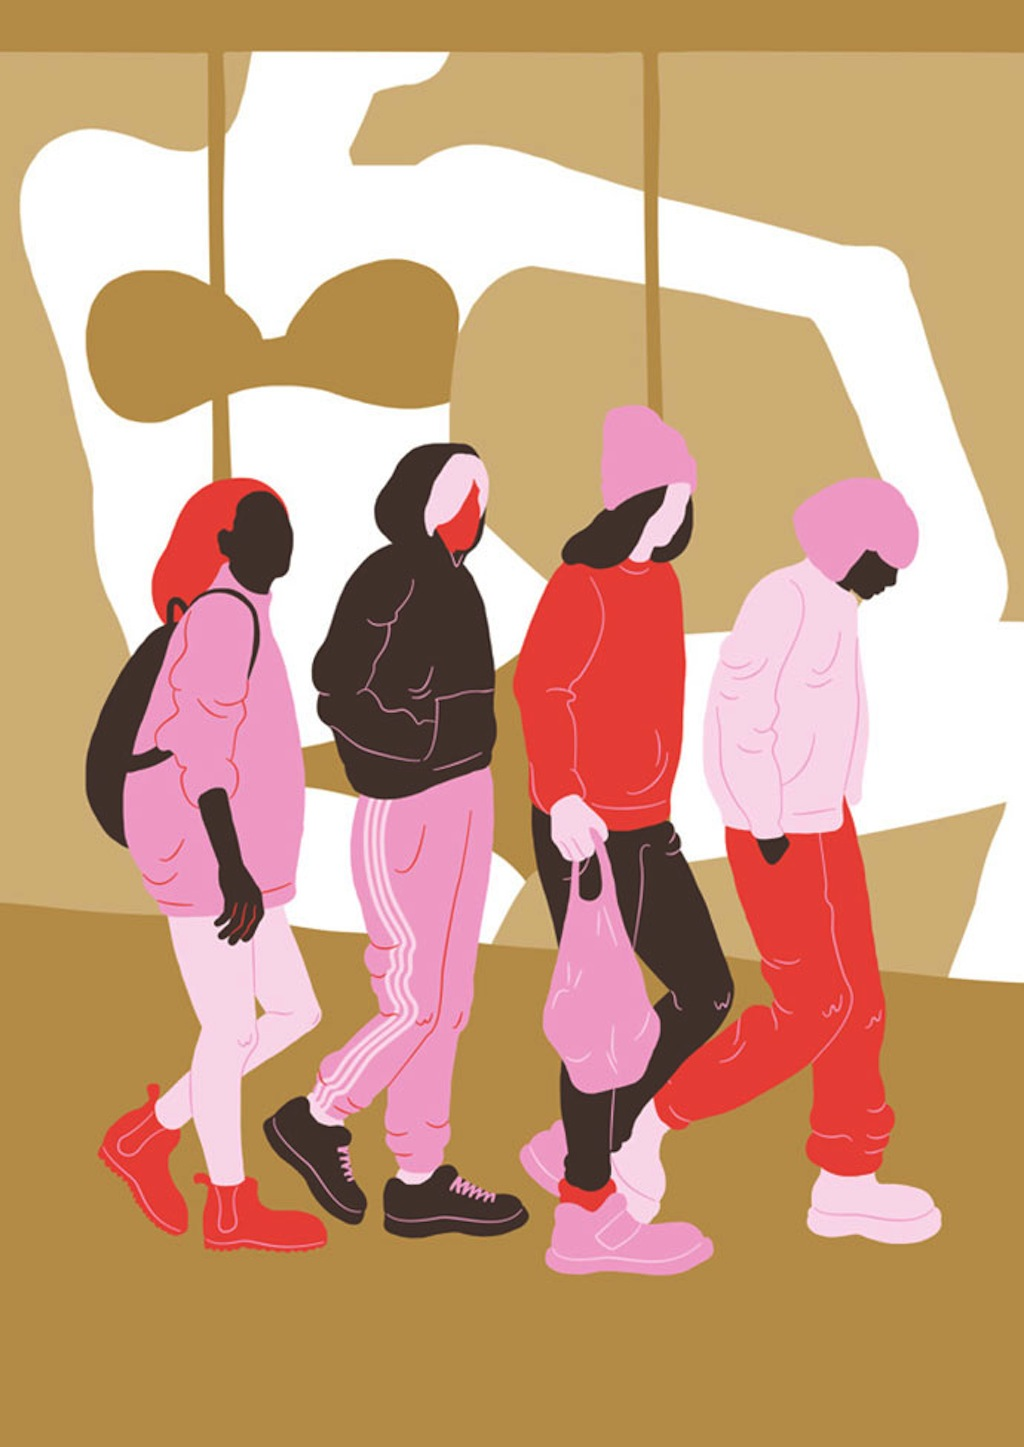 A Ode To Feminine Lines by Sara Andreasson